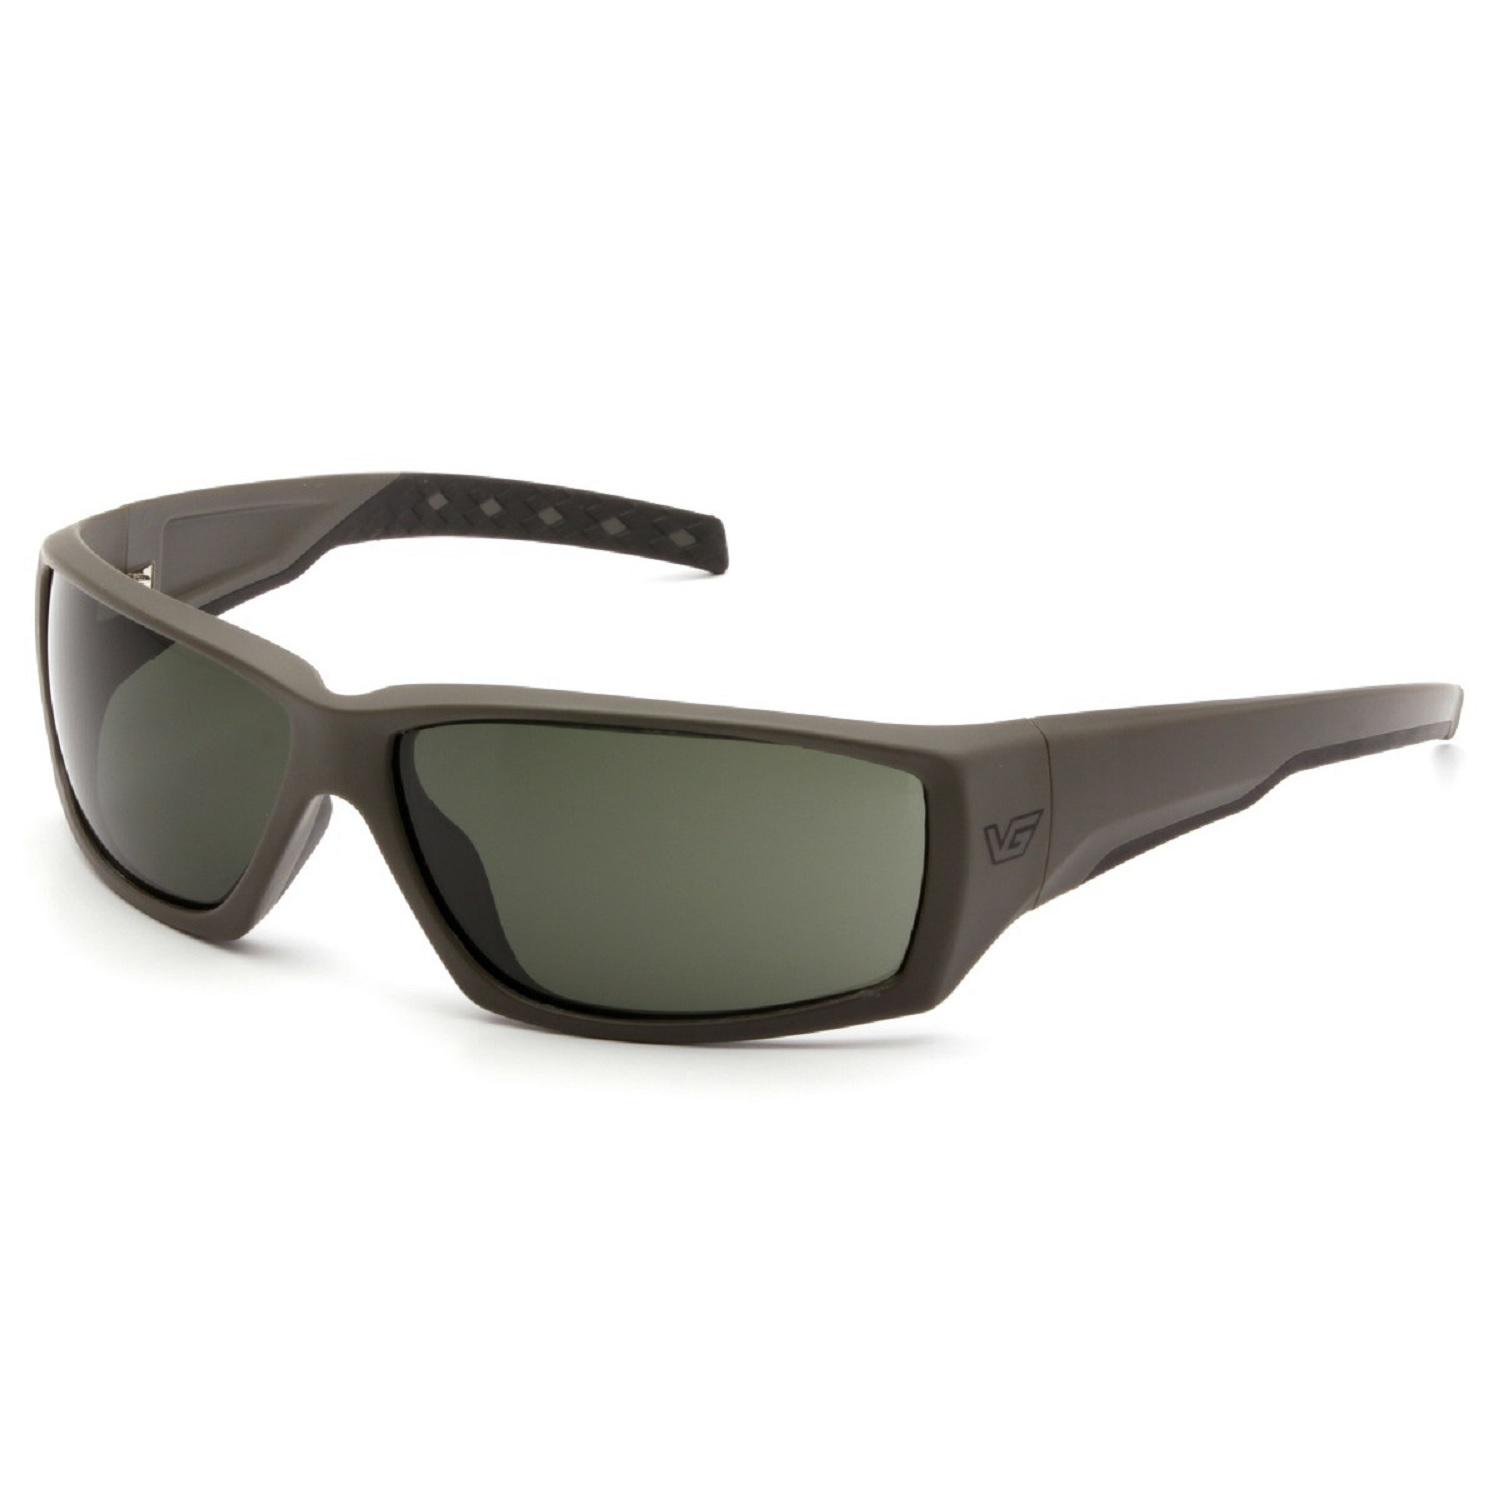 Venture Gear Overwatch Gray Frame Forest Gray Anti Fog Lens